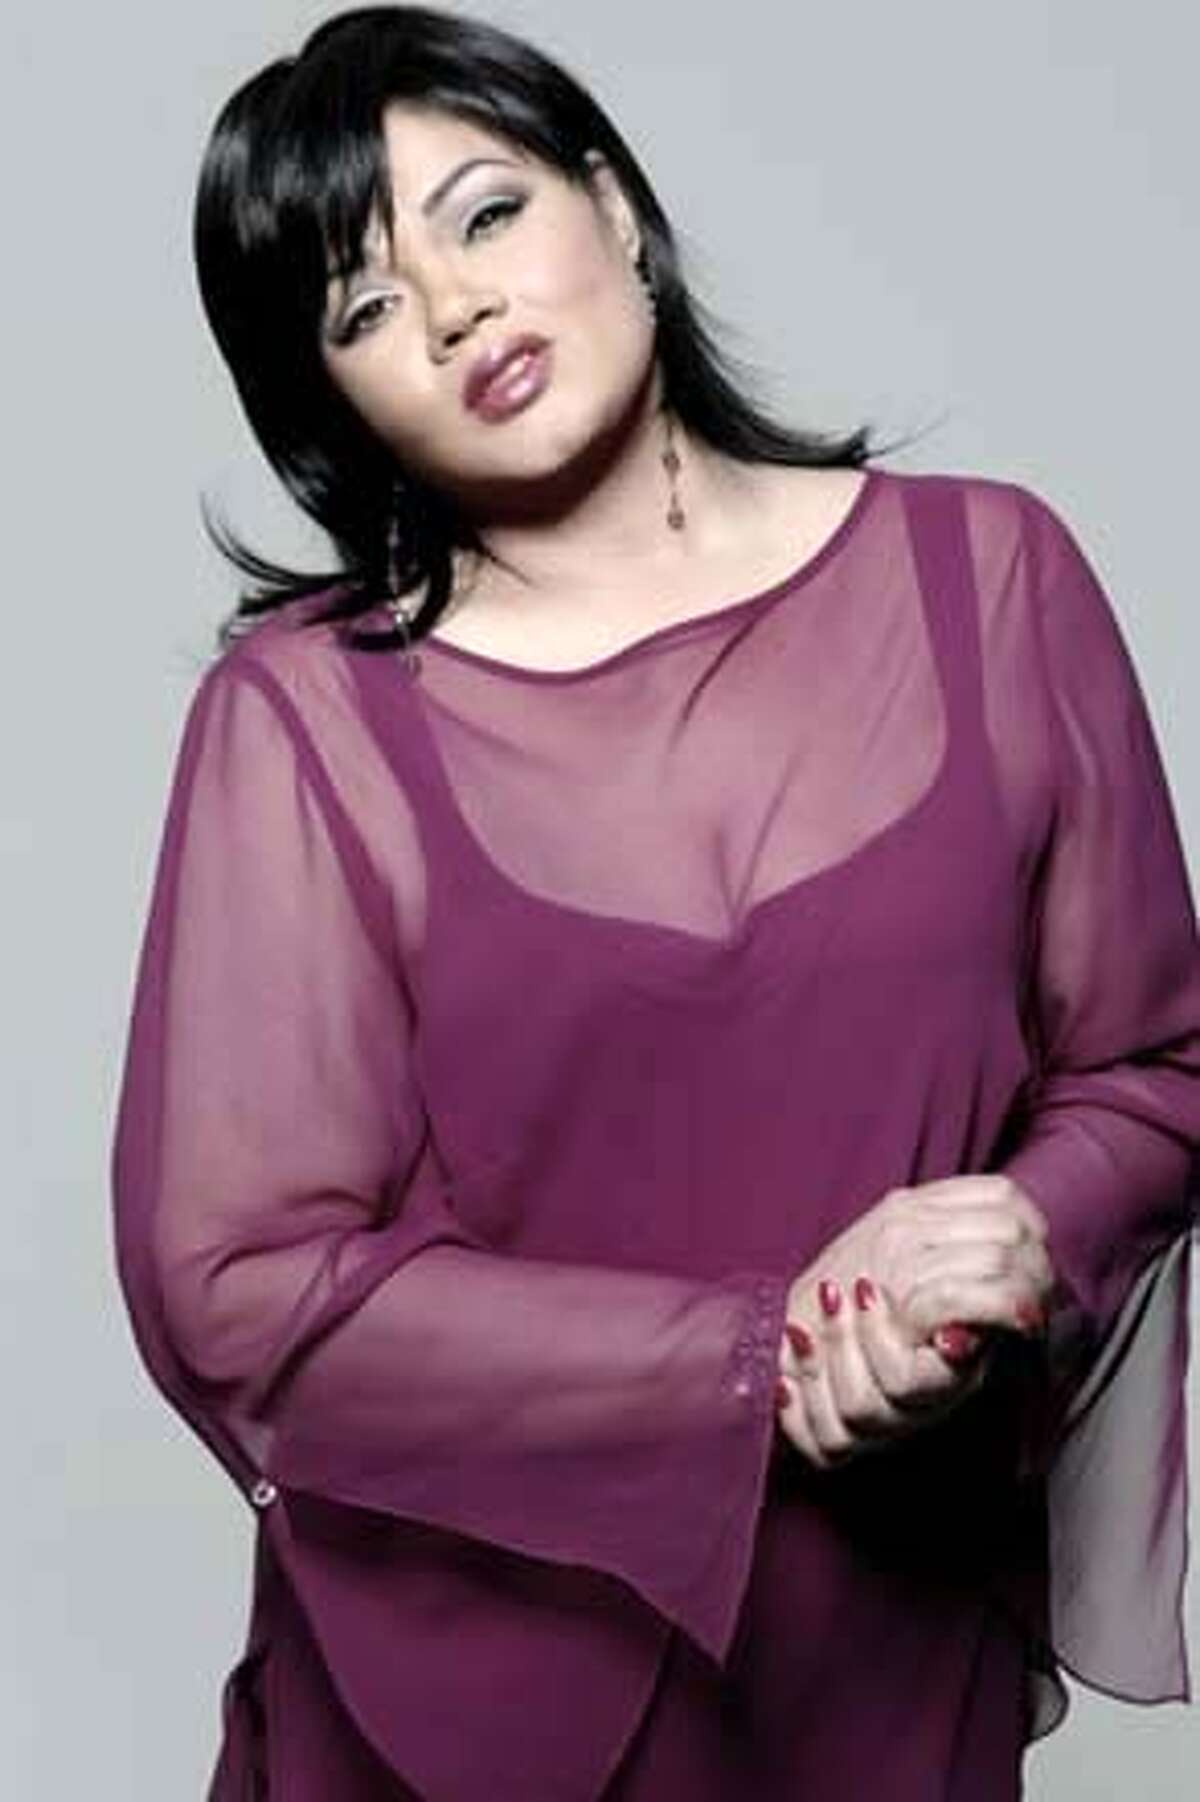 The Spirit of Giving: A Concert tribute to jazz/R&B singer/songwriter Angela Bofill, who suffered two strokes, will be held Dec. 8 at Grace Cathedral in San Francisco.